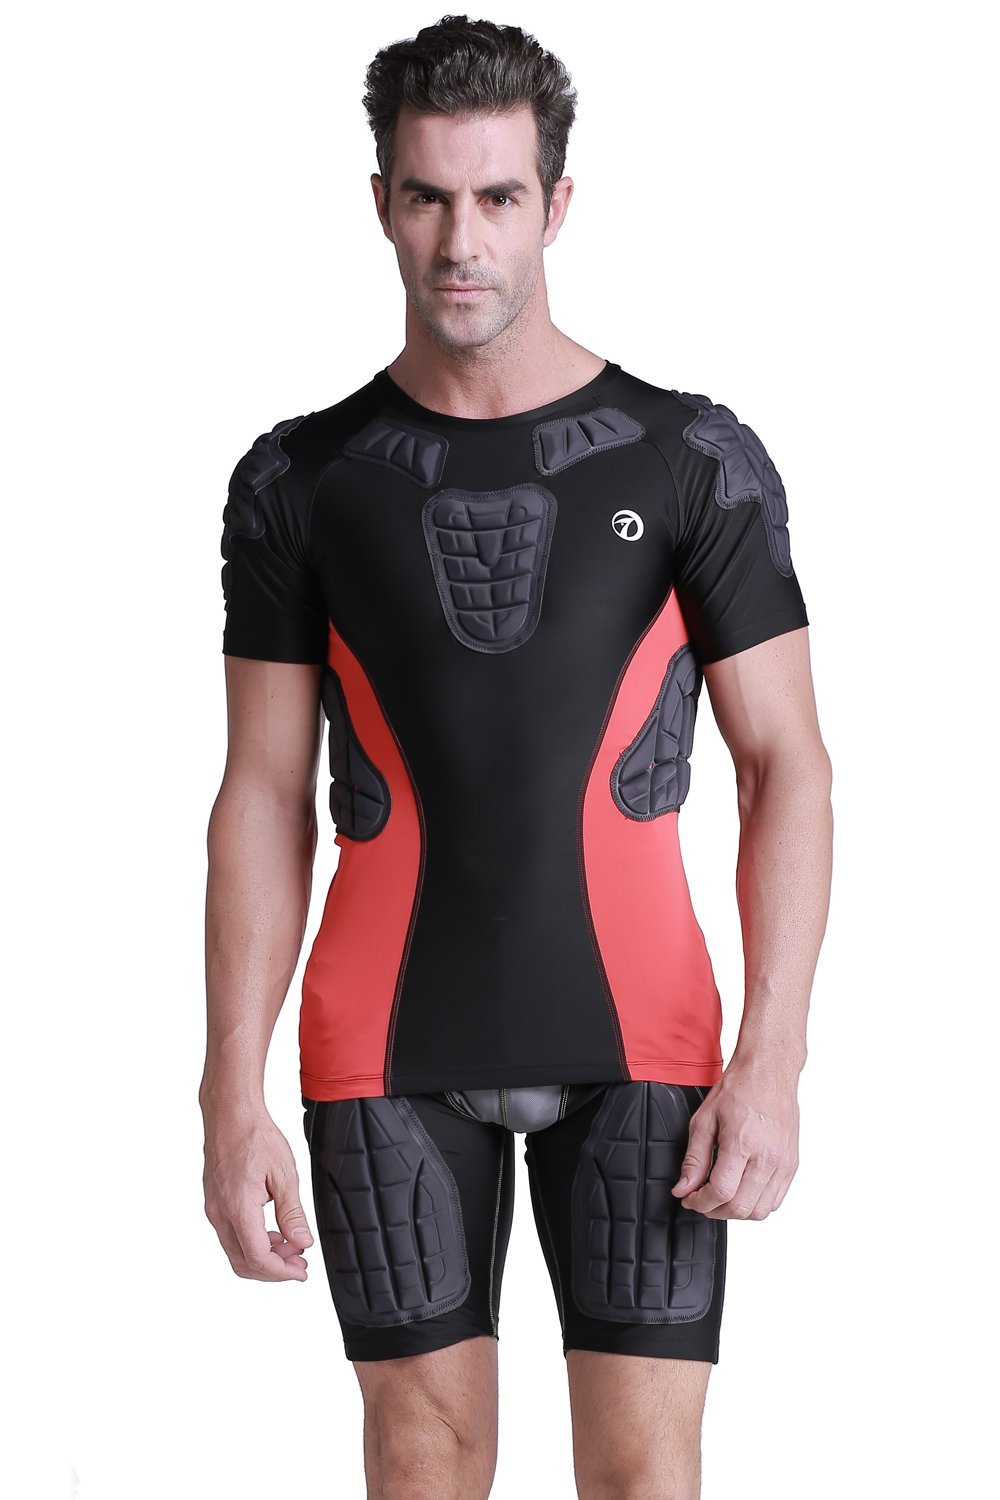 TUOY Men's Padded Compression Shirt Protective T Shirt Rib Chest Protector for Football Paintball Baseball by TUOY